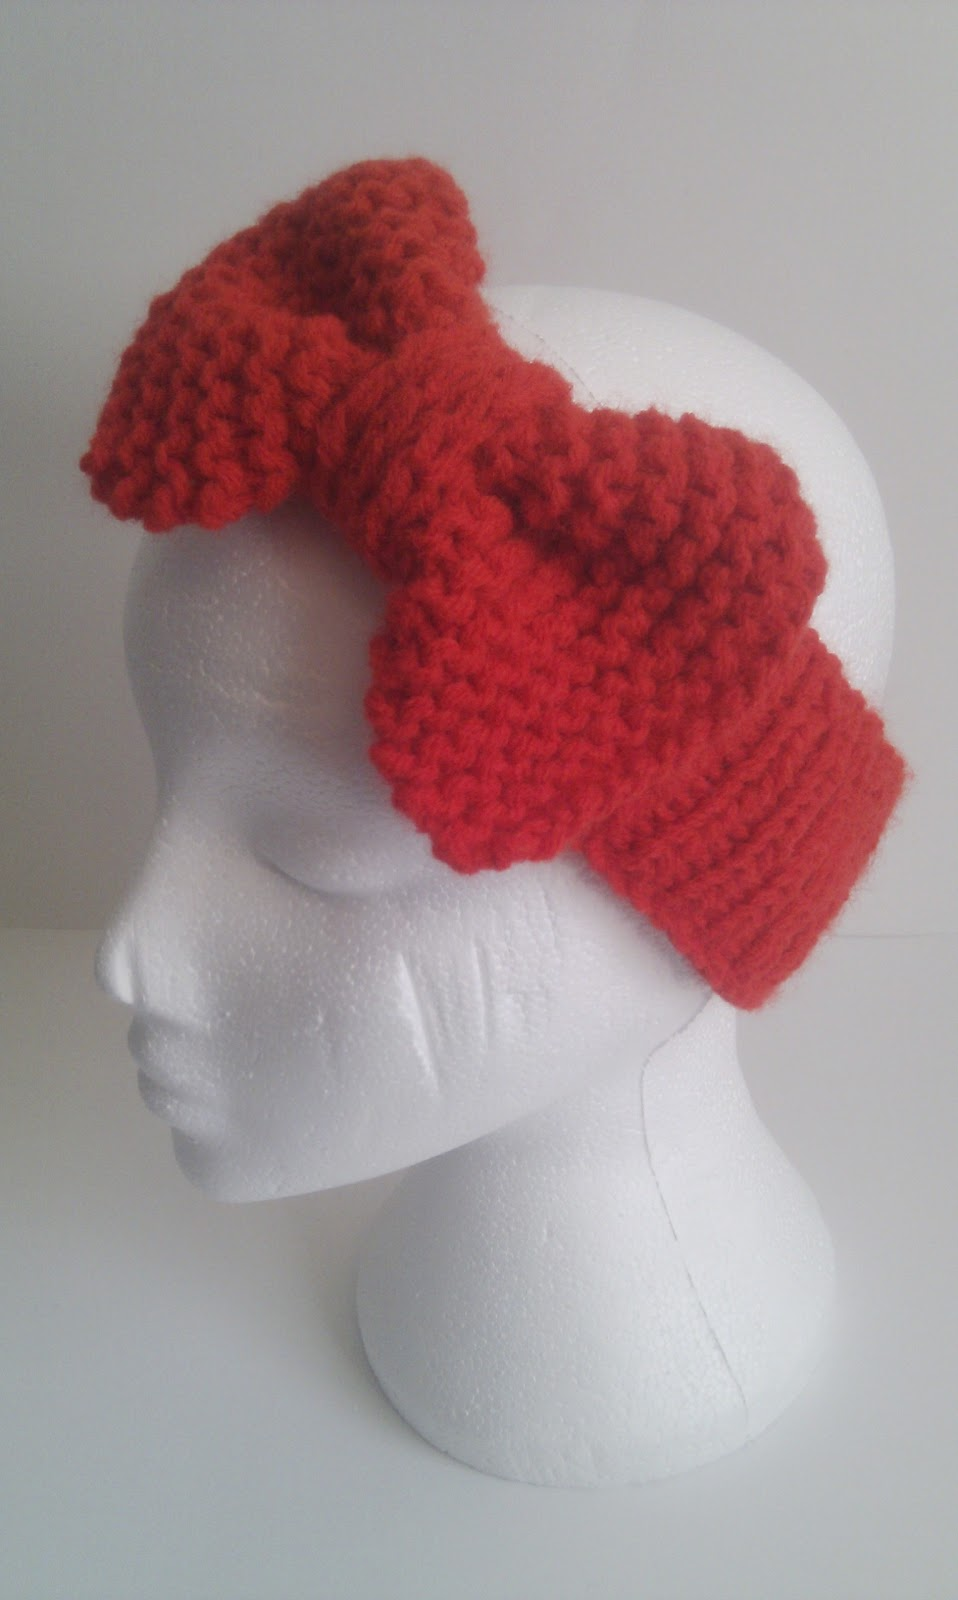 Knitted Bow Pattern : Musings of a knit-a-holic from Wales: Free Knitting Pattern: Beau Bow Headband